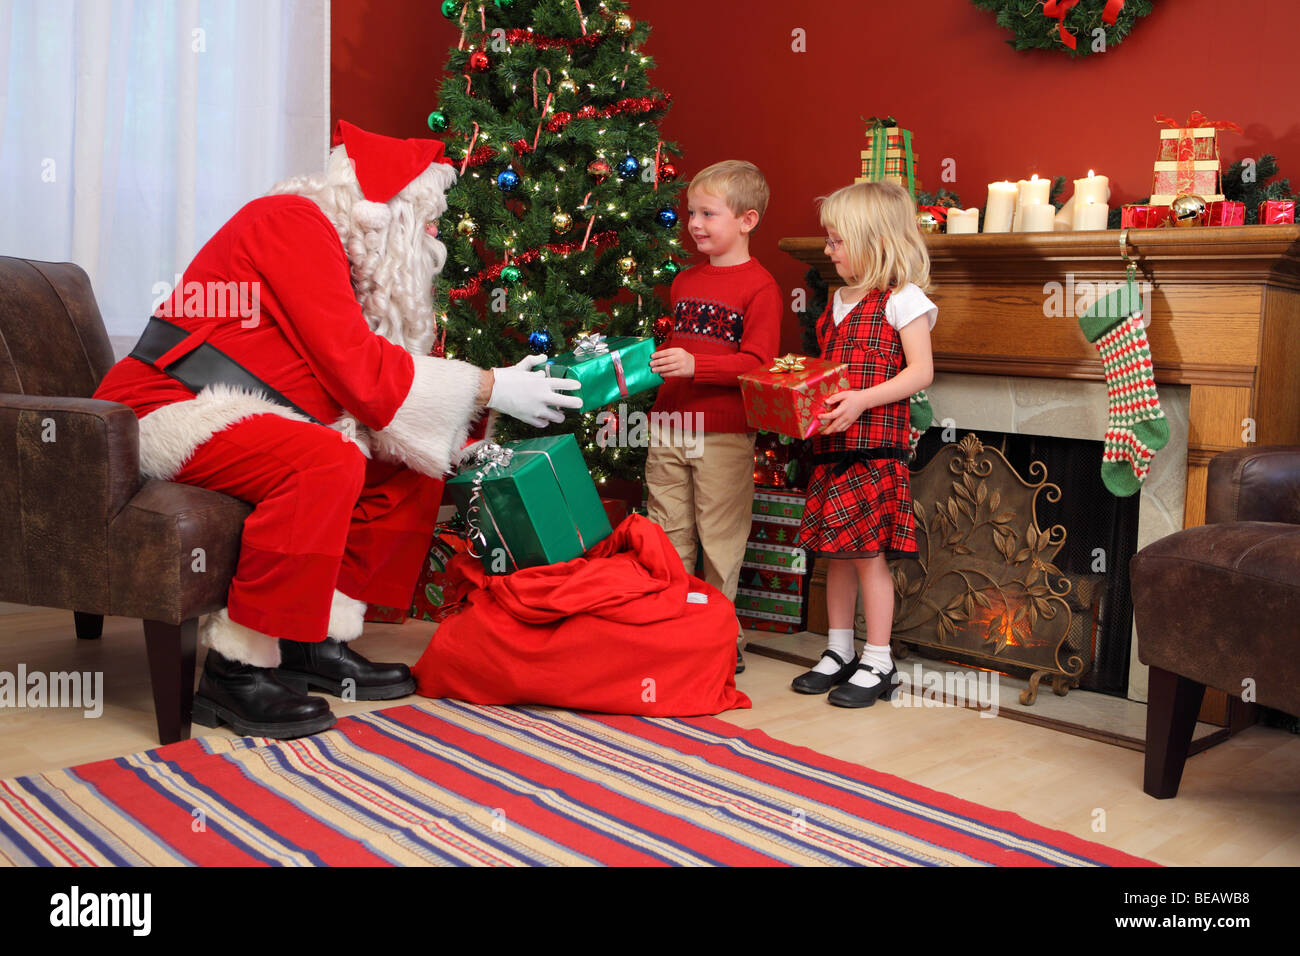 Santa Claus gives Christmas gifts to children - Stock Image